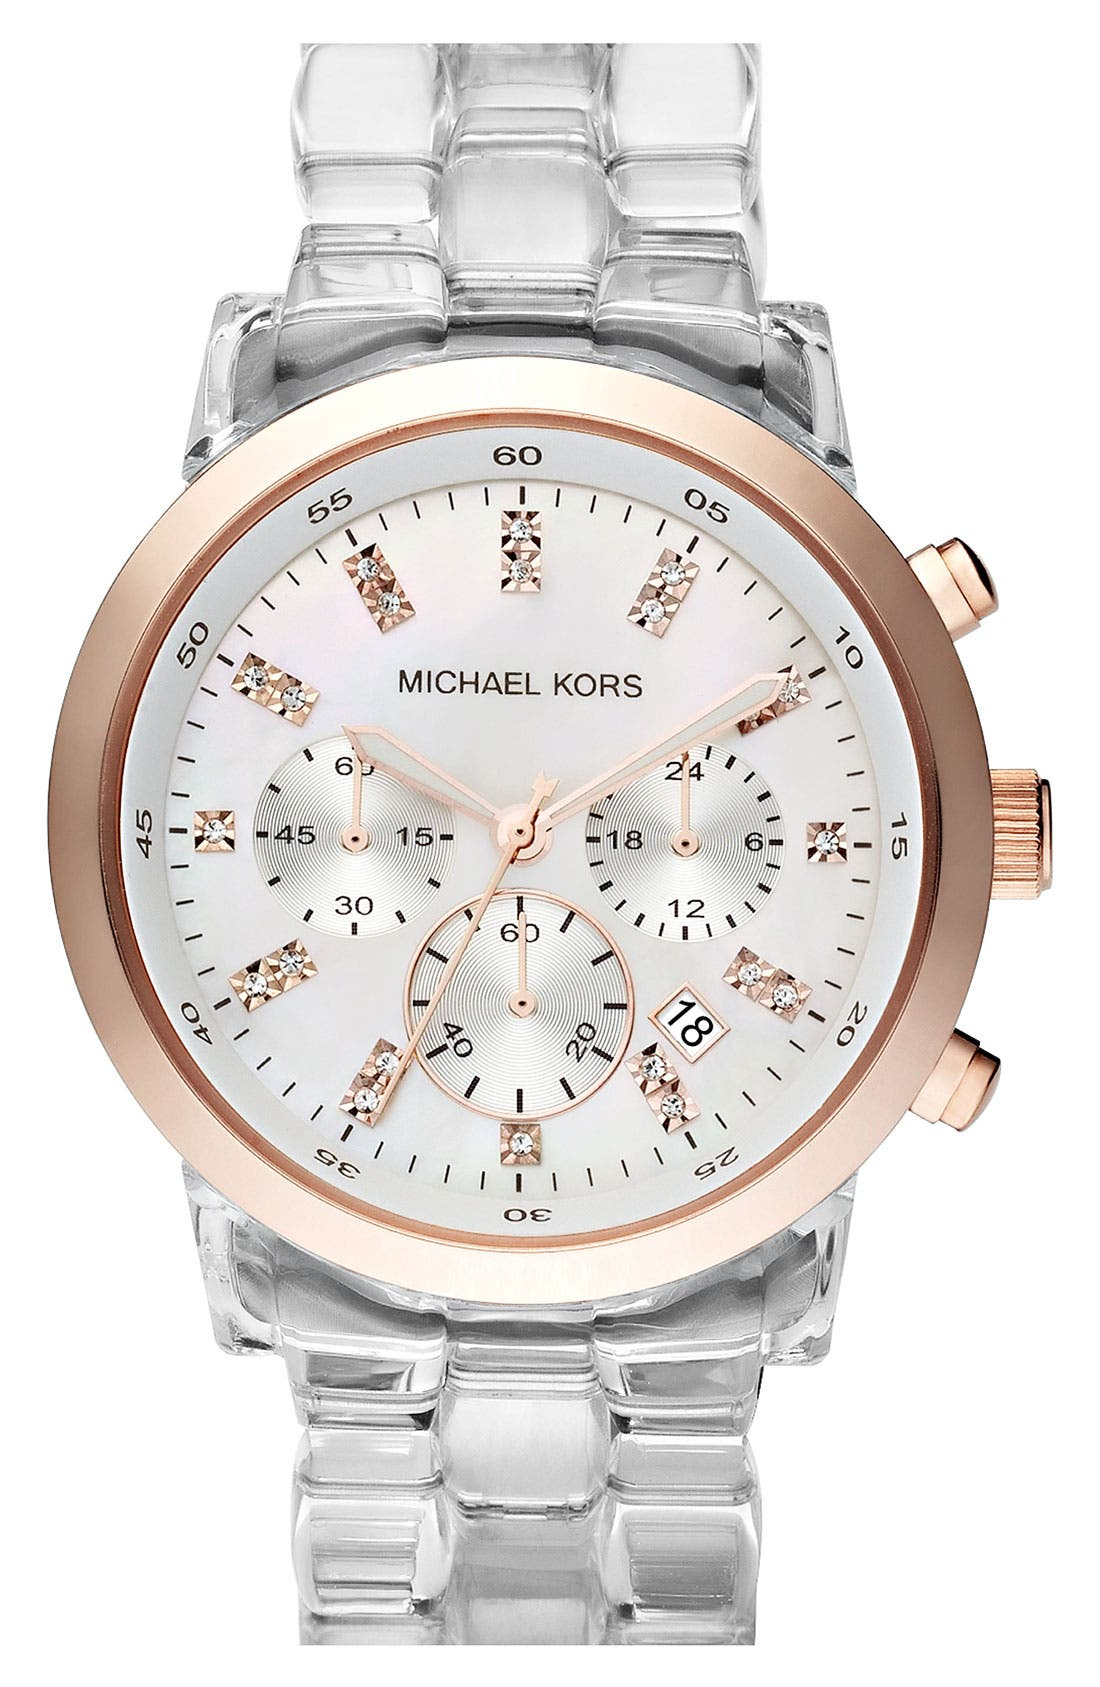 Main Image - Michael Kors 'Show Stopper' Resin Watch